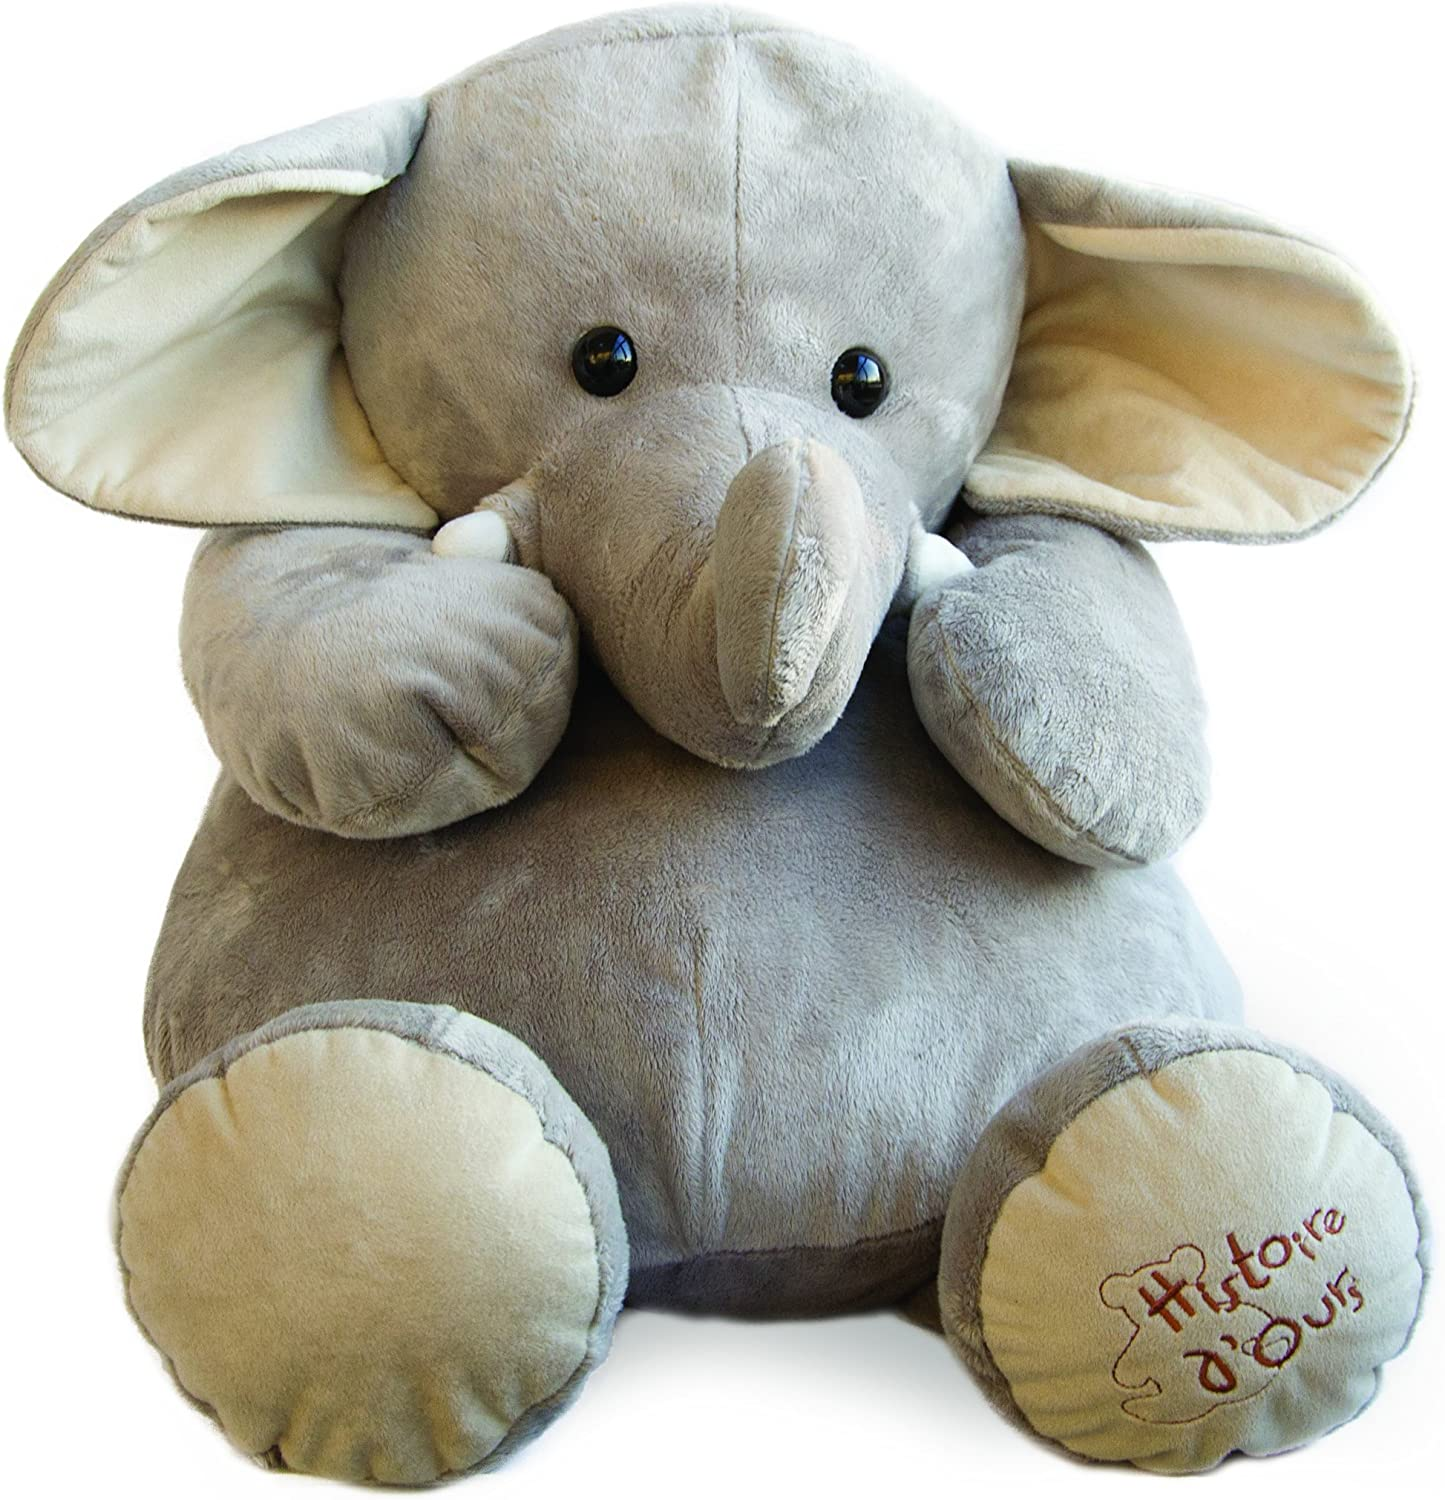 Histoire d'ours HO1285 Stofftier, 60 cm